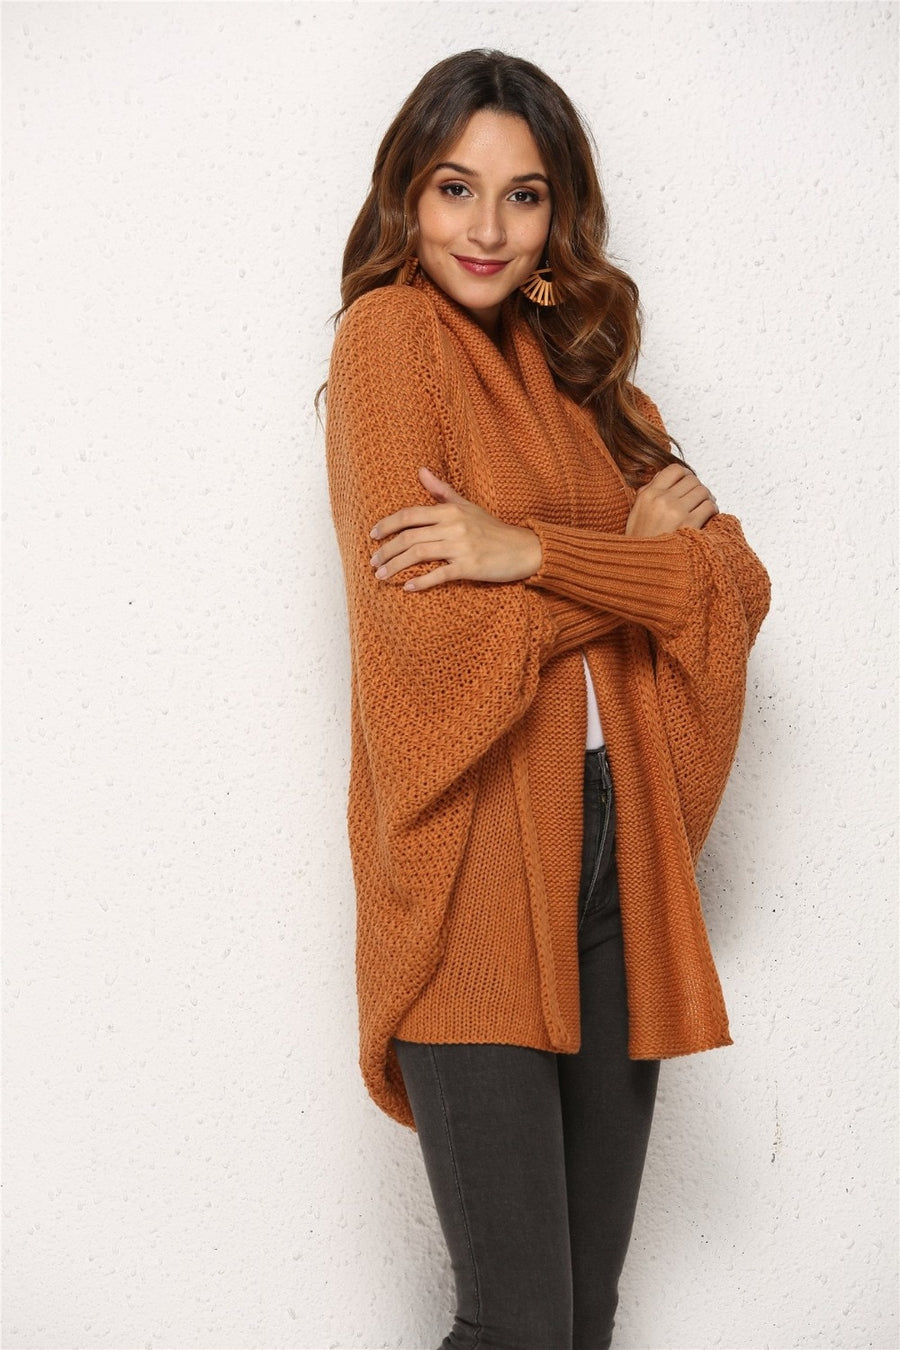 Long Sweater Sleeve Knit Batwing Sleeve Cardigan Ladies V Neck